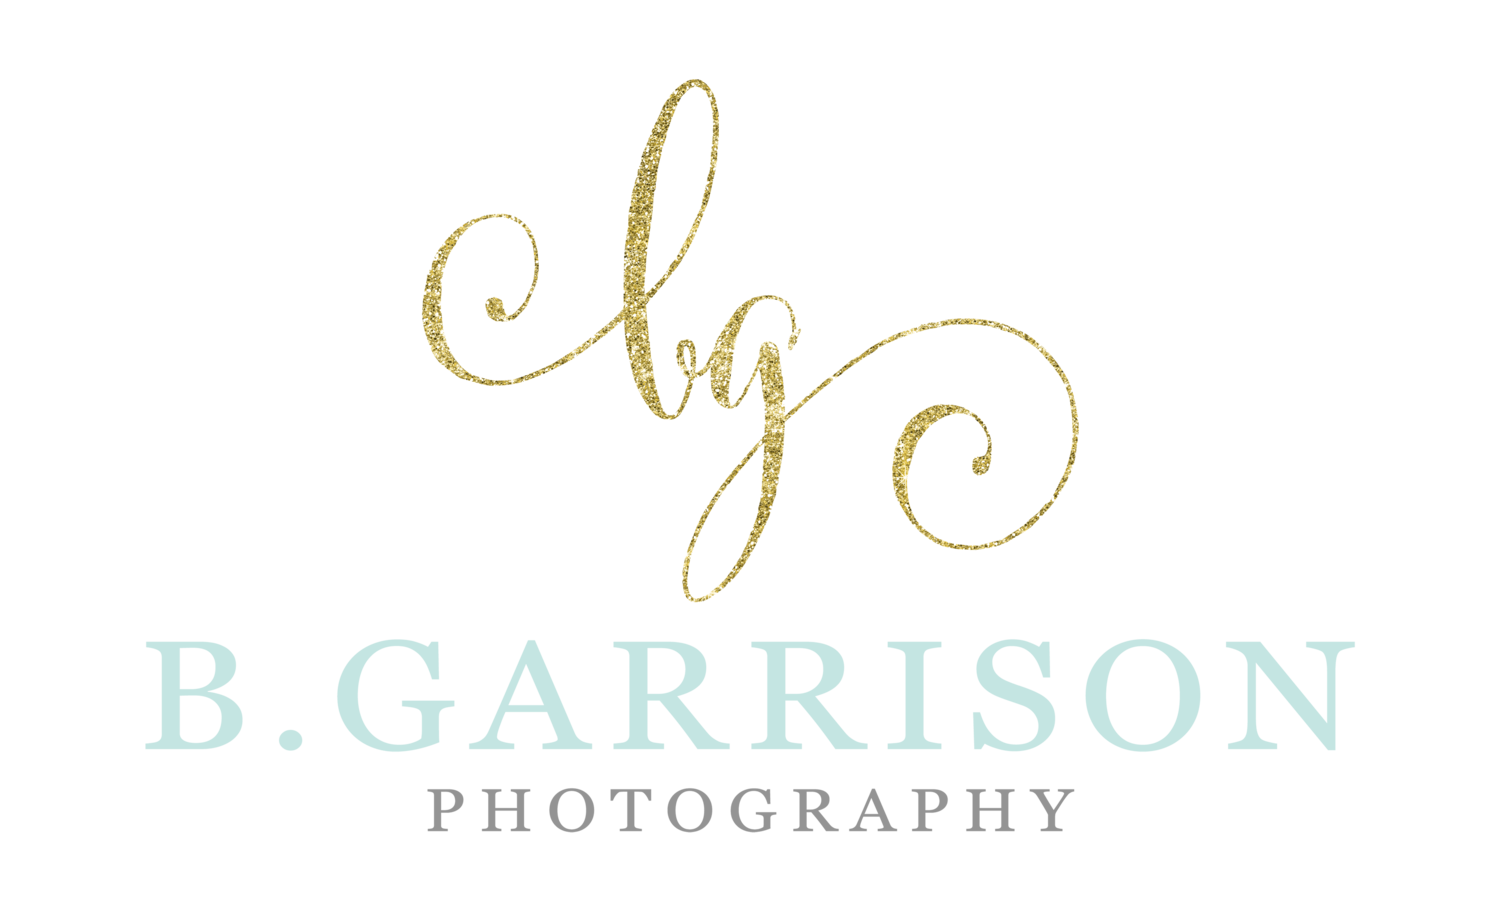 B. Garrison Photography